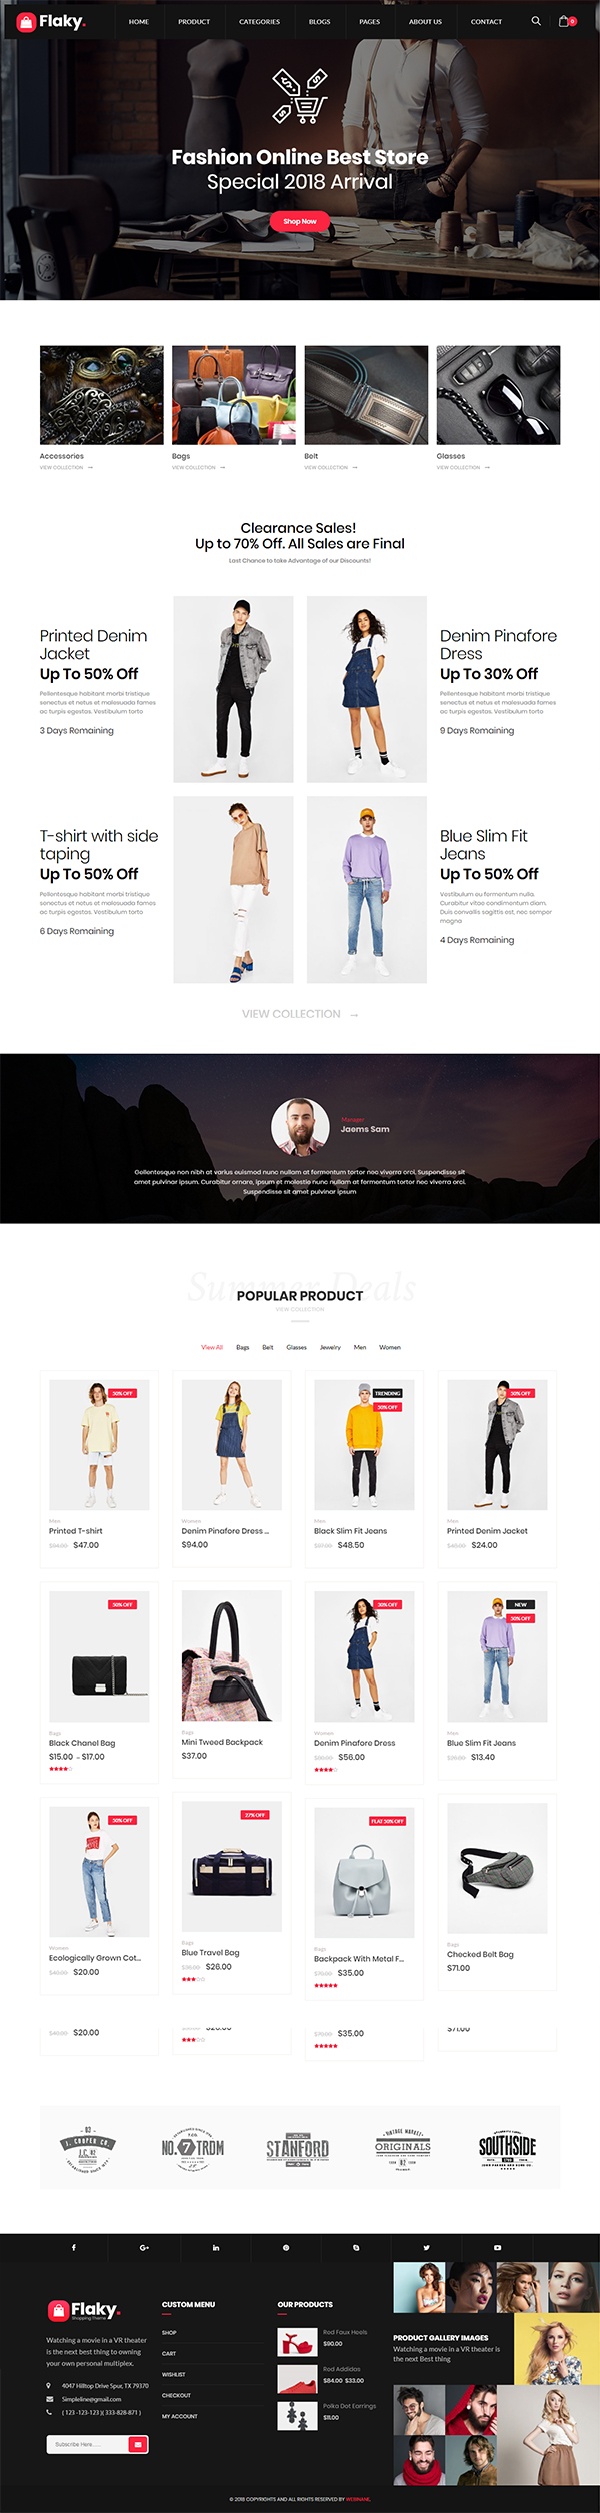 Flaky – A Responsive WooCommerce Theme for Online Shopping Websites